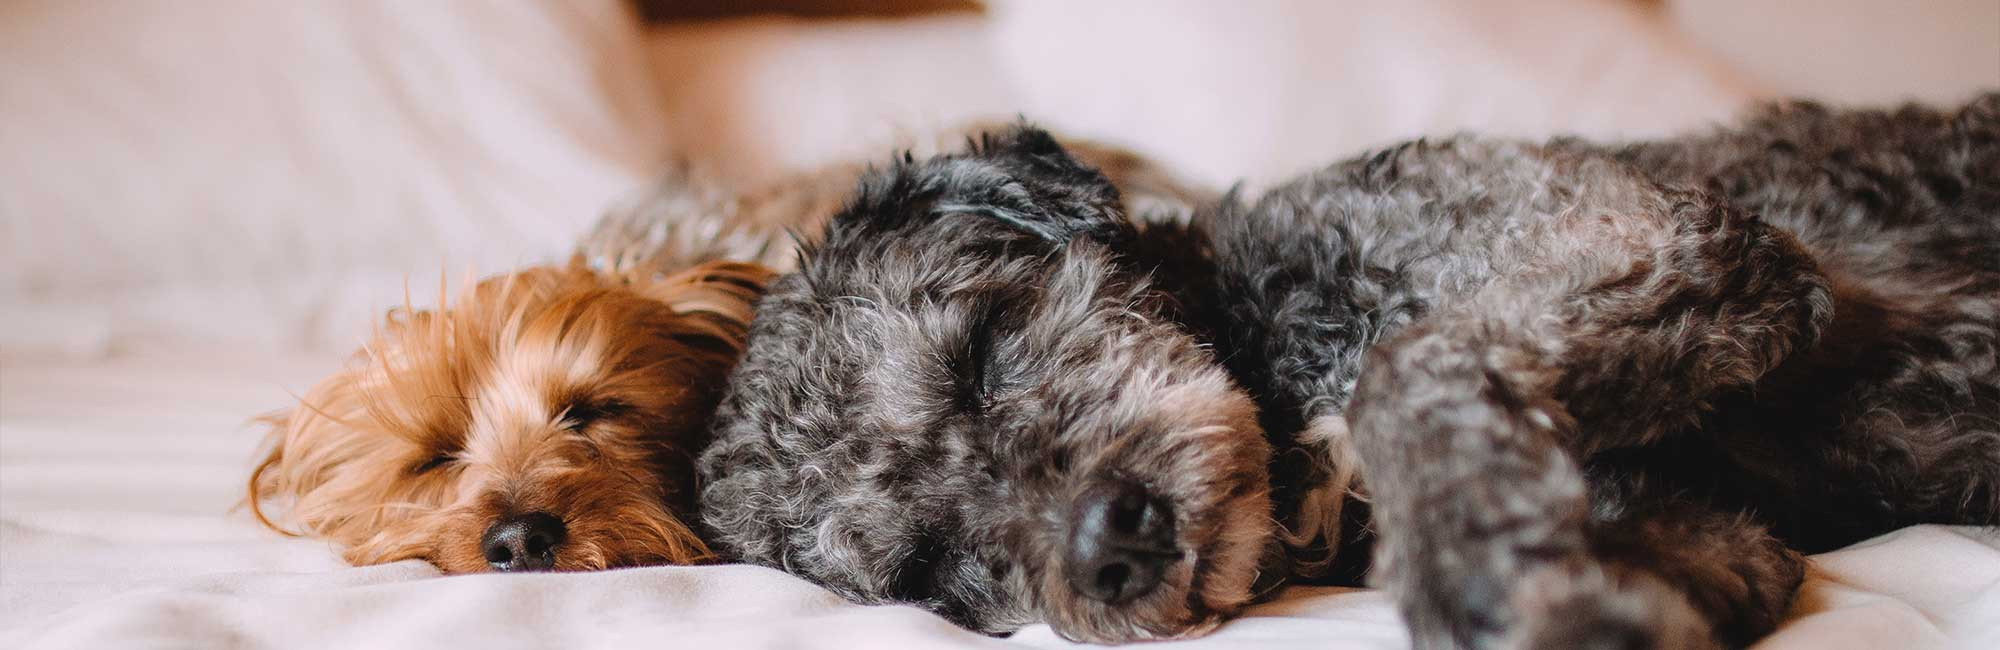 pet friendly hotels in tampa - 2 dogs napping on bed